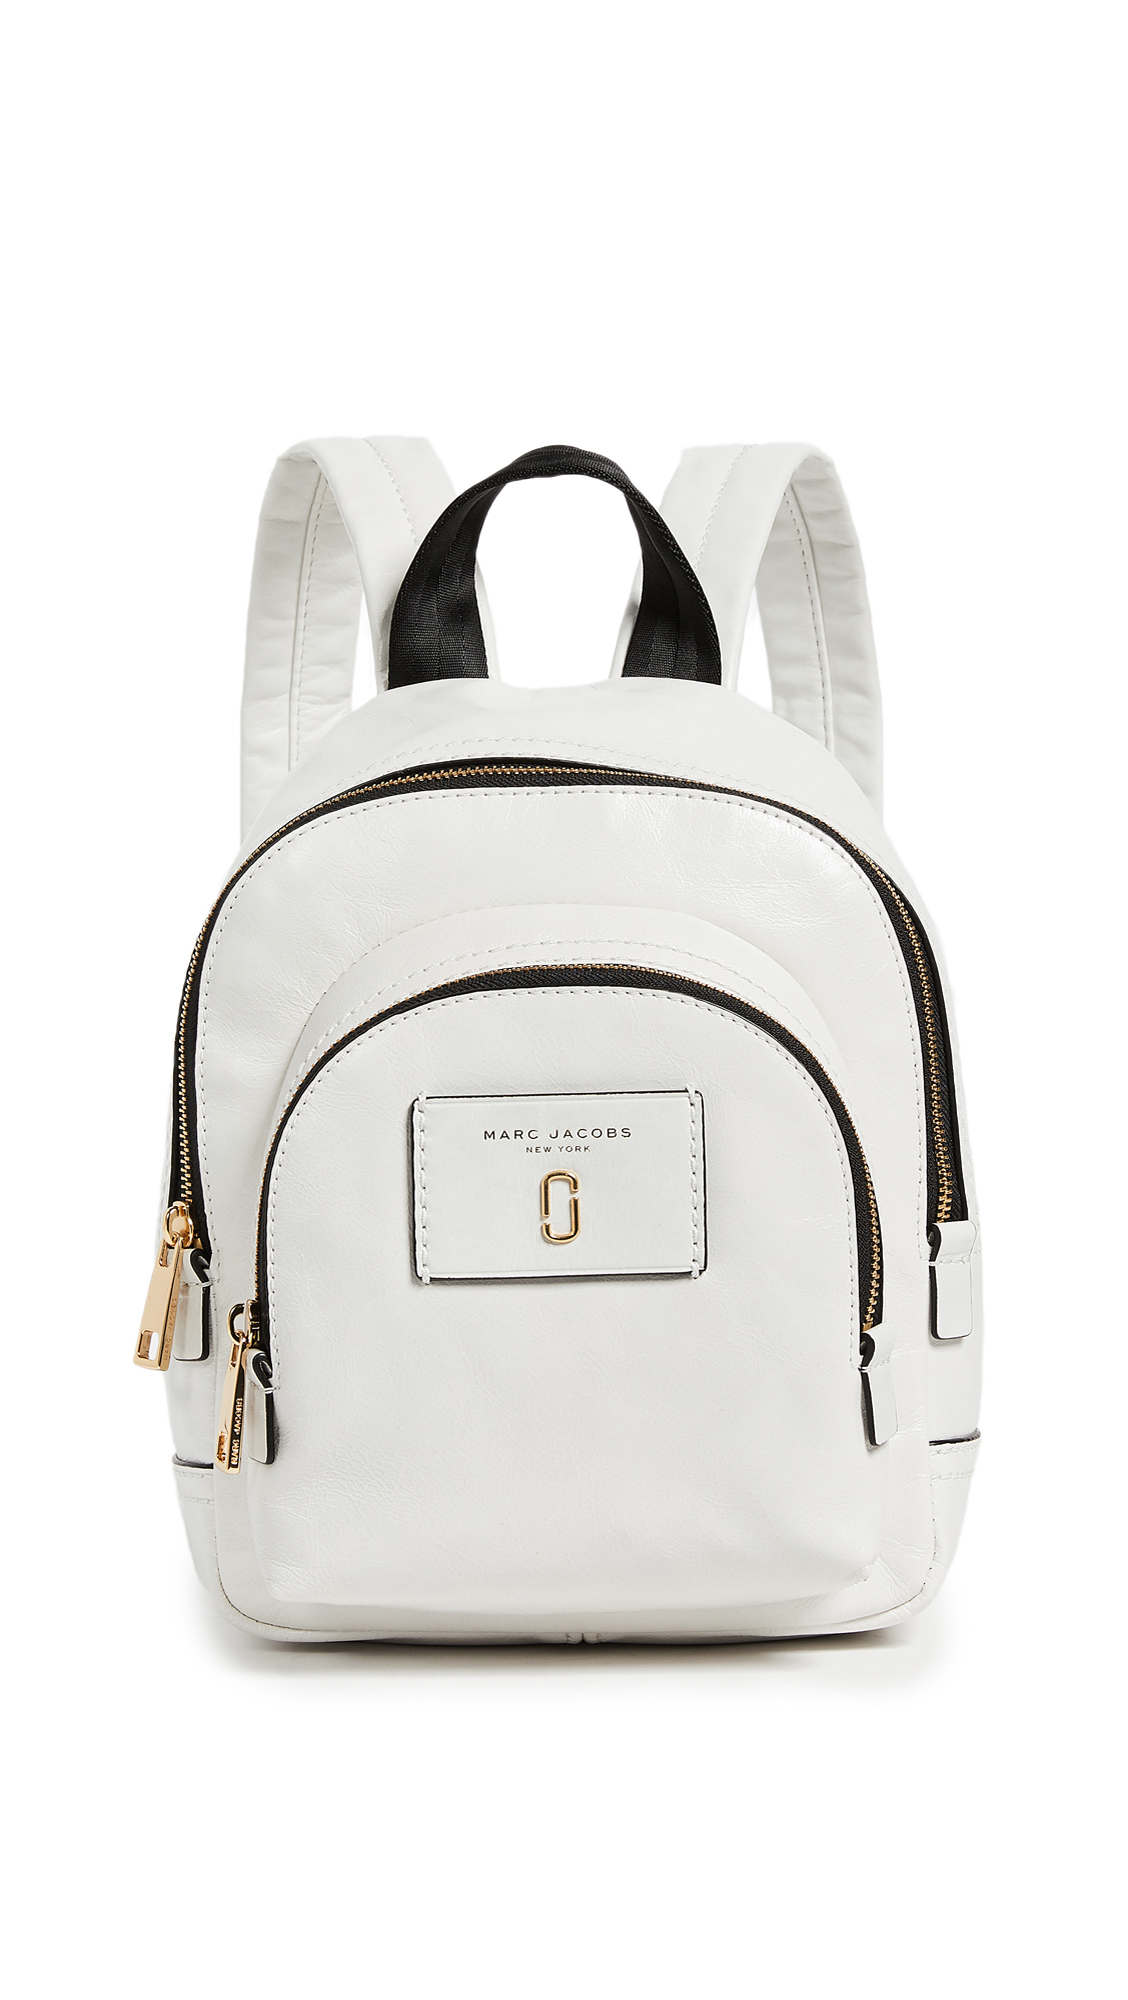 Marc Jacobs Mini Double Backpack - White Glow